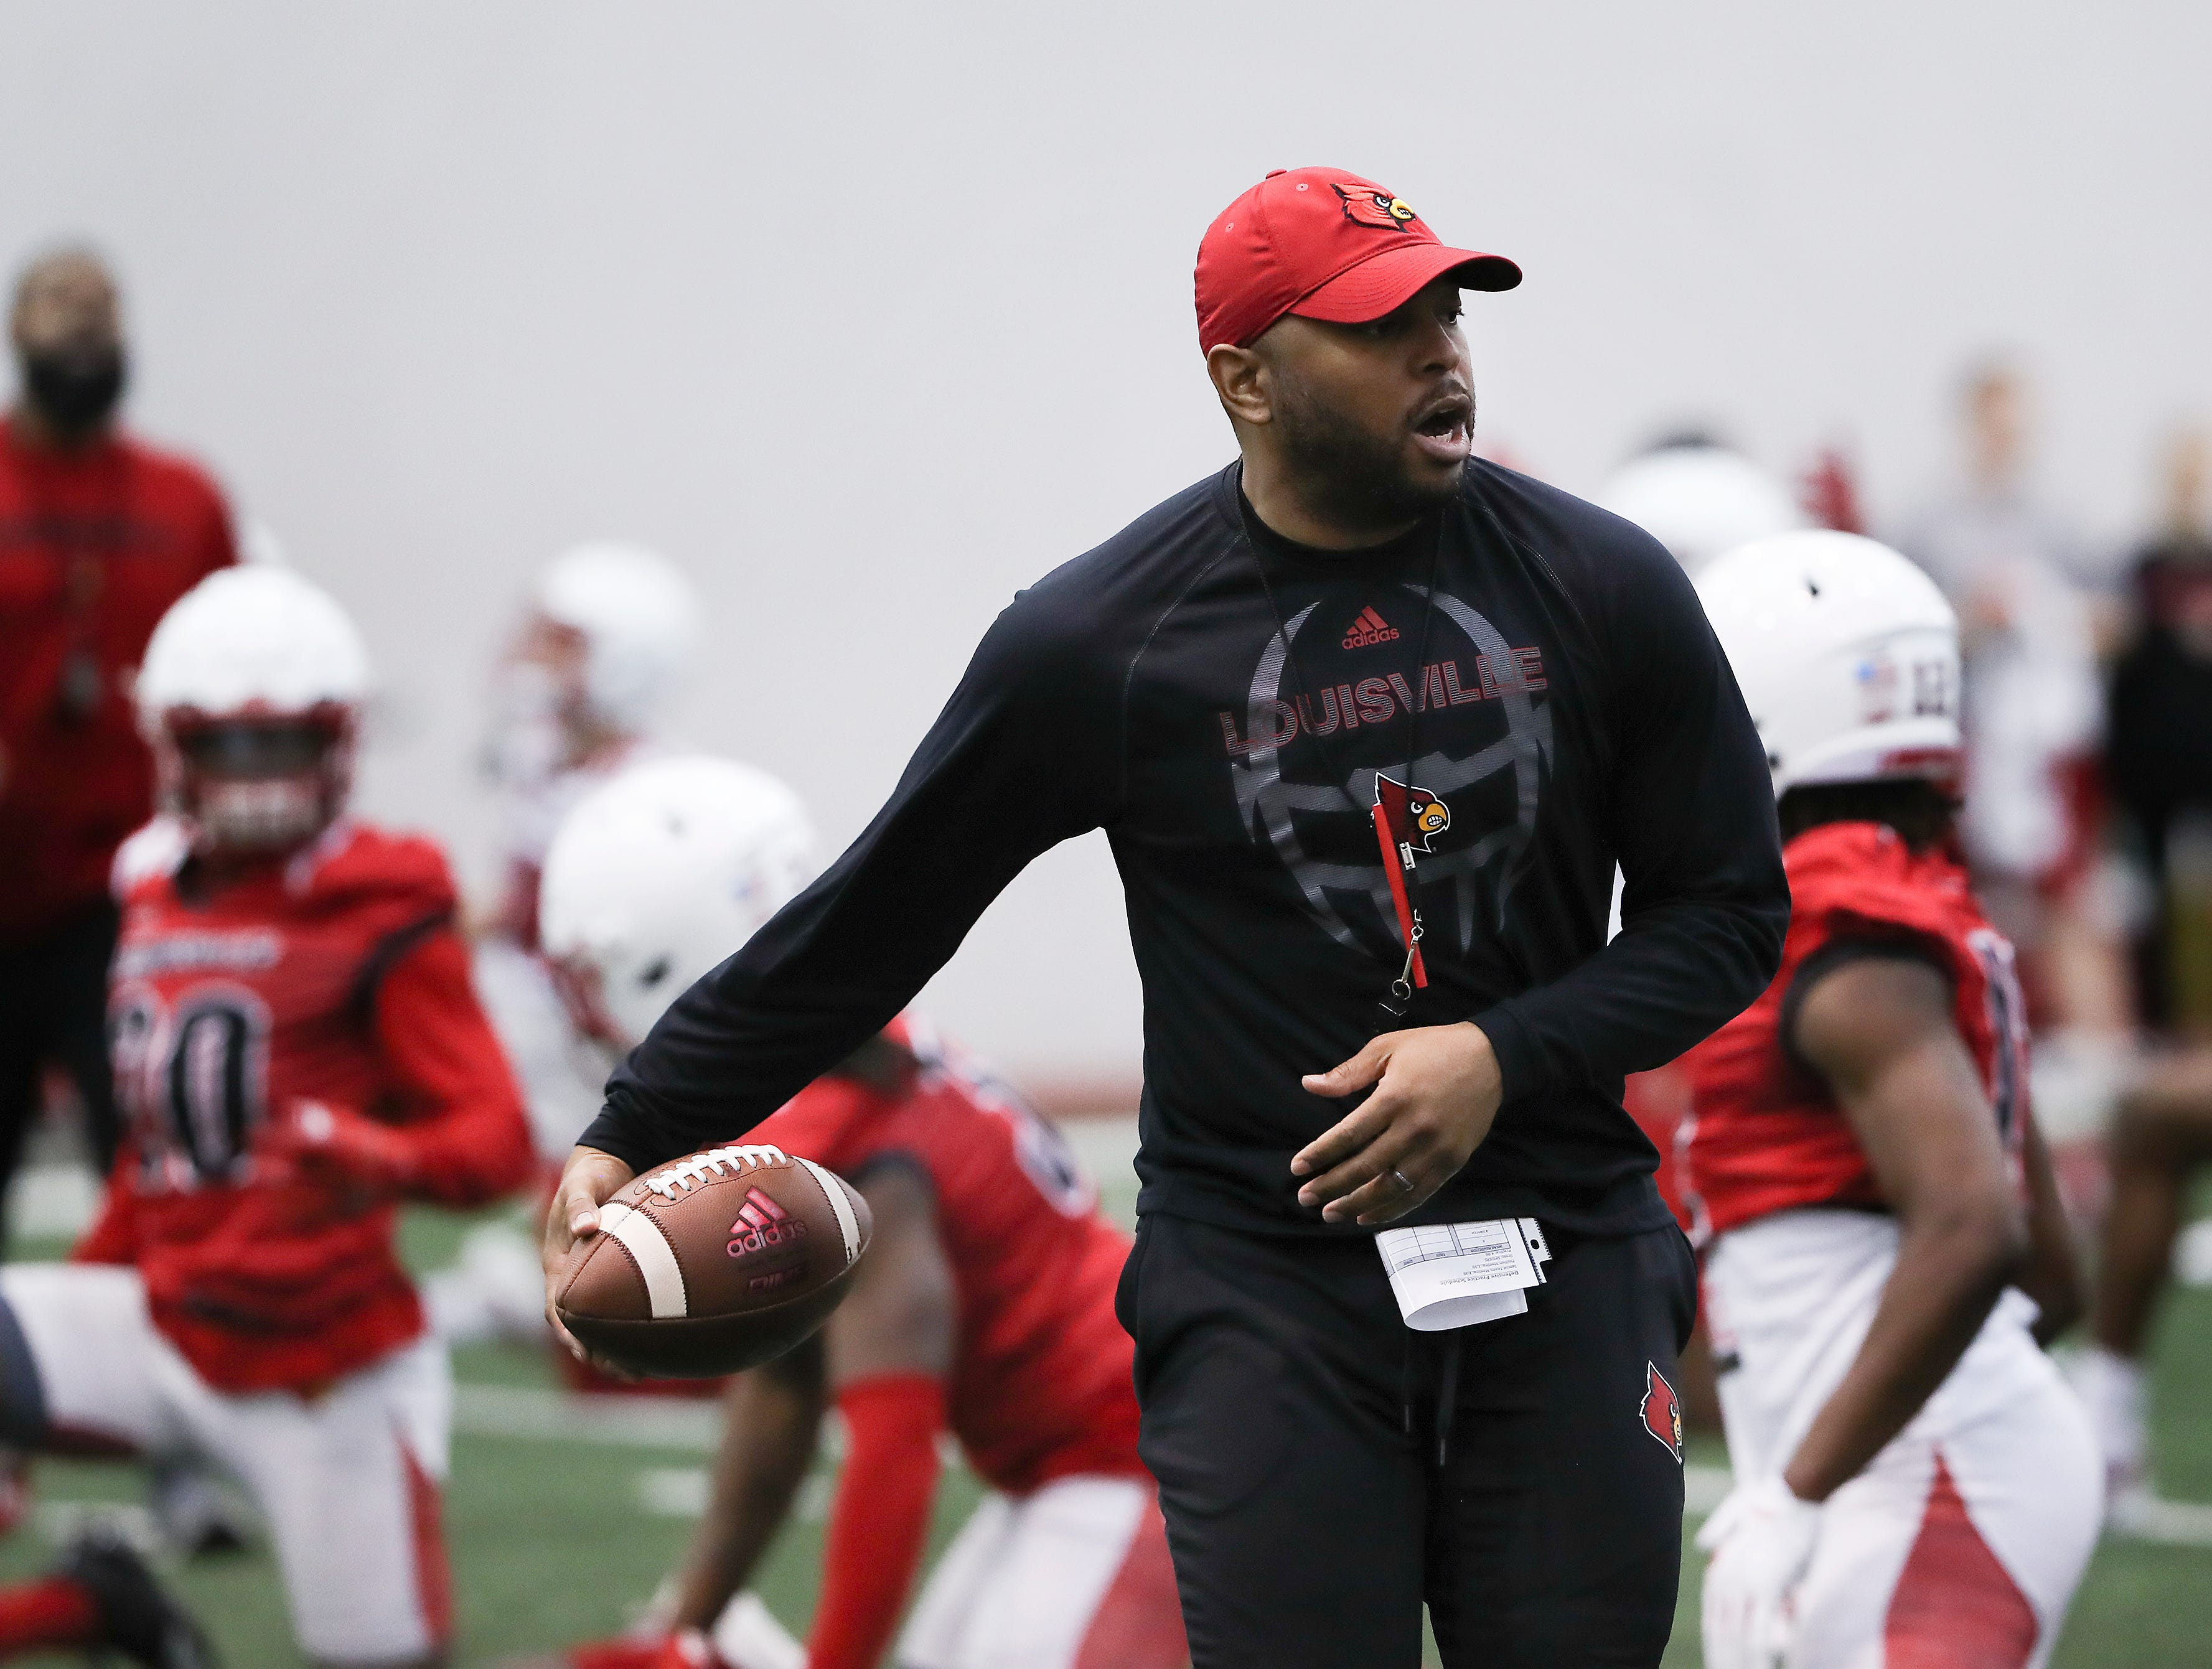 U of L defensive coordinator Bryan Brown conducted drills during practice at the Trager Center.